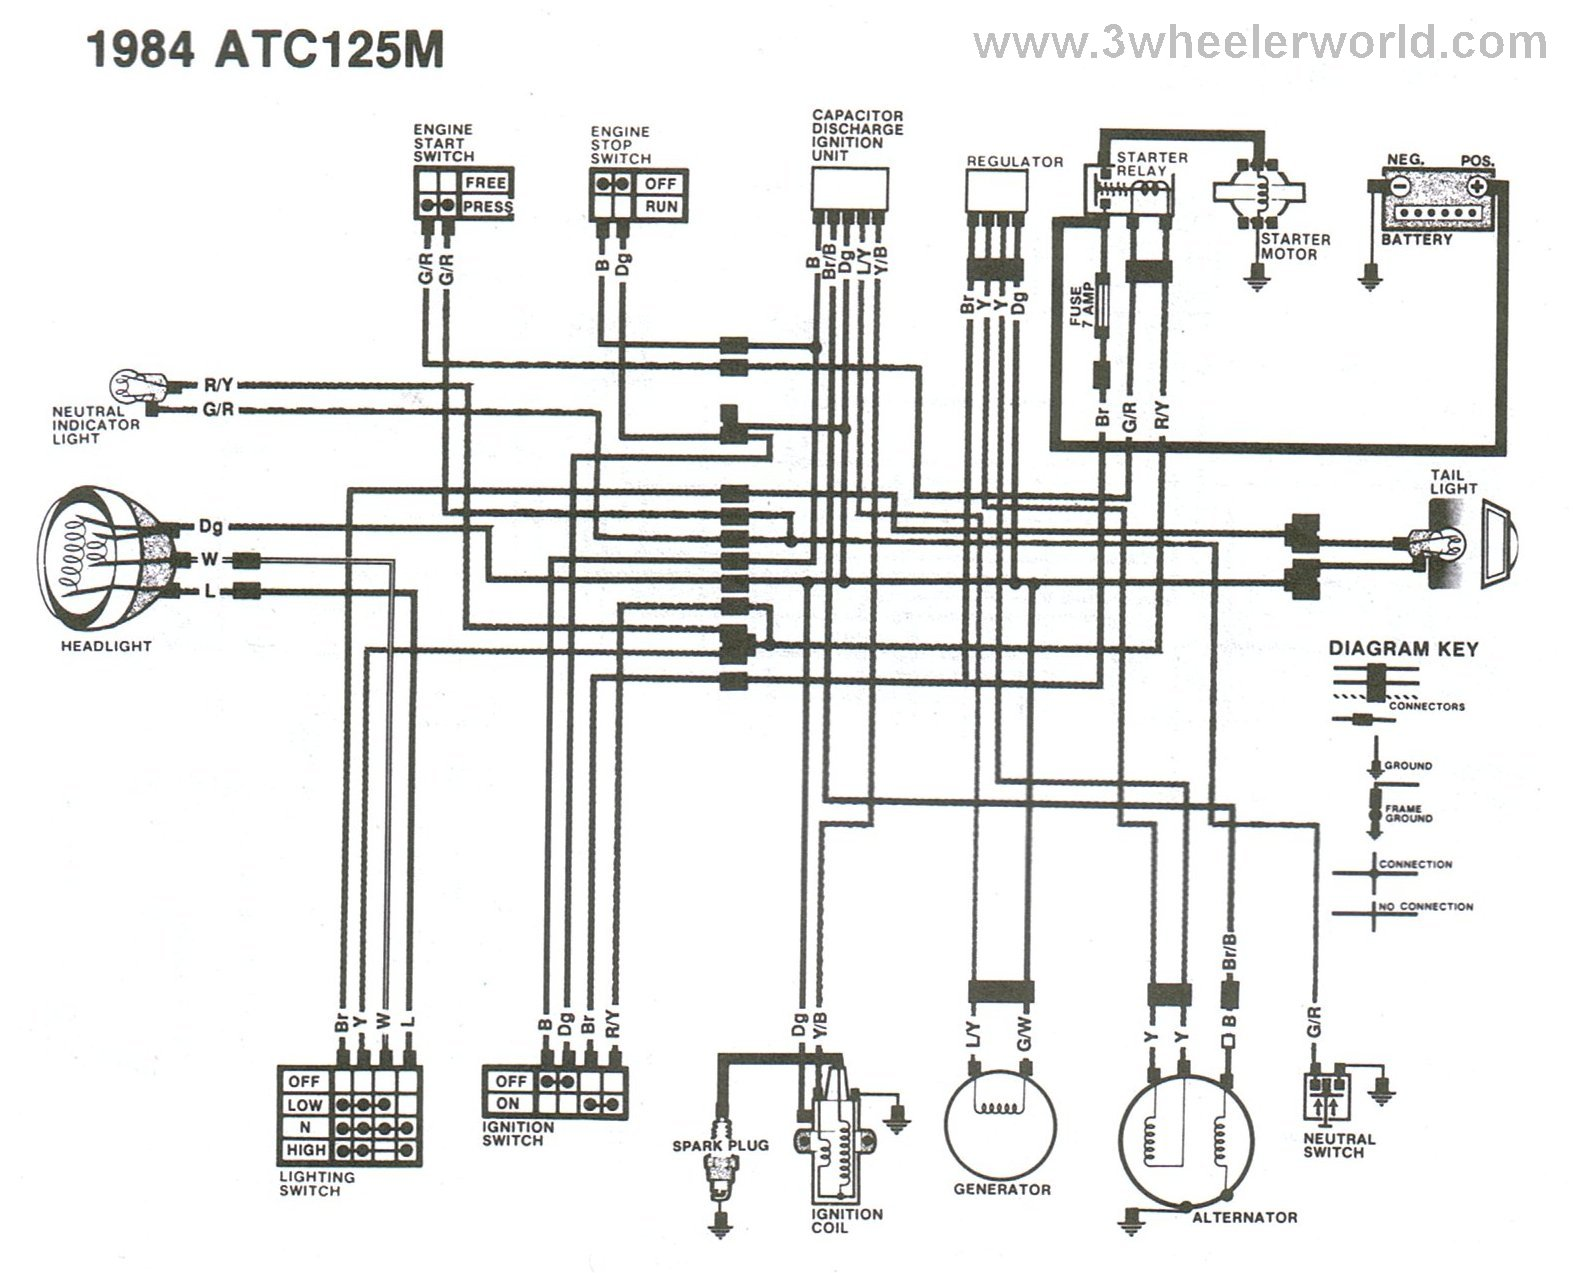 Klt 250 Wiring Diagram Wiring Diagrams Asv 50 Air Bag Kebilau Waystar Fr